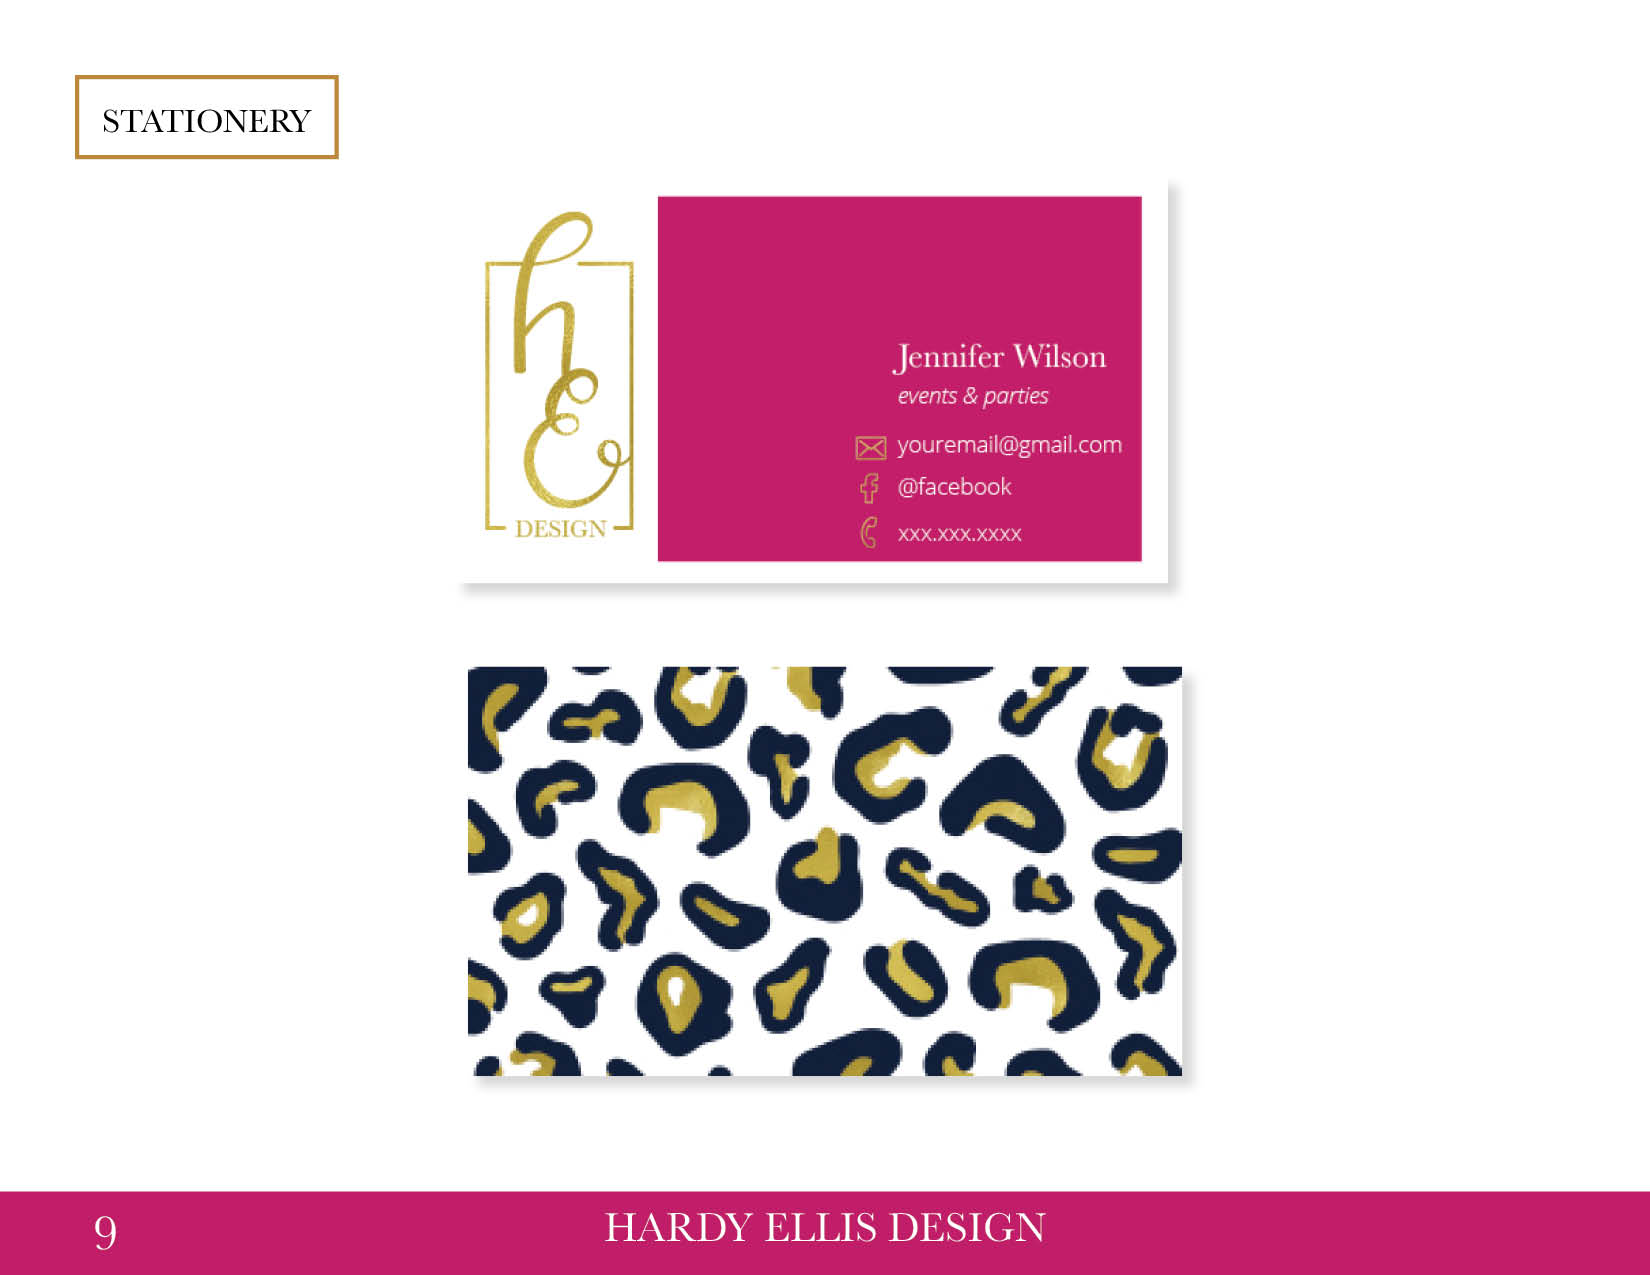 Hardy Ellis Design Style Guide9